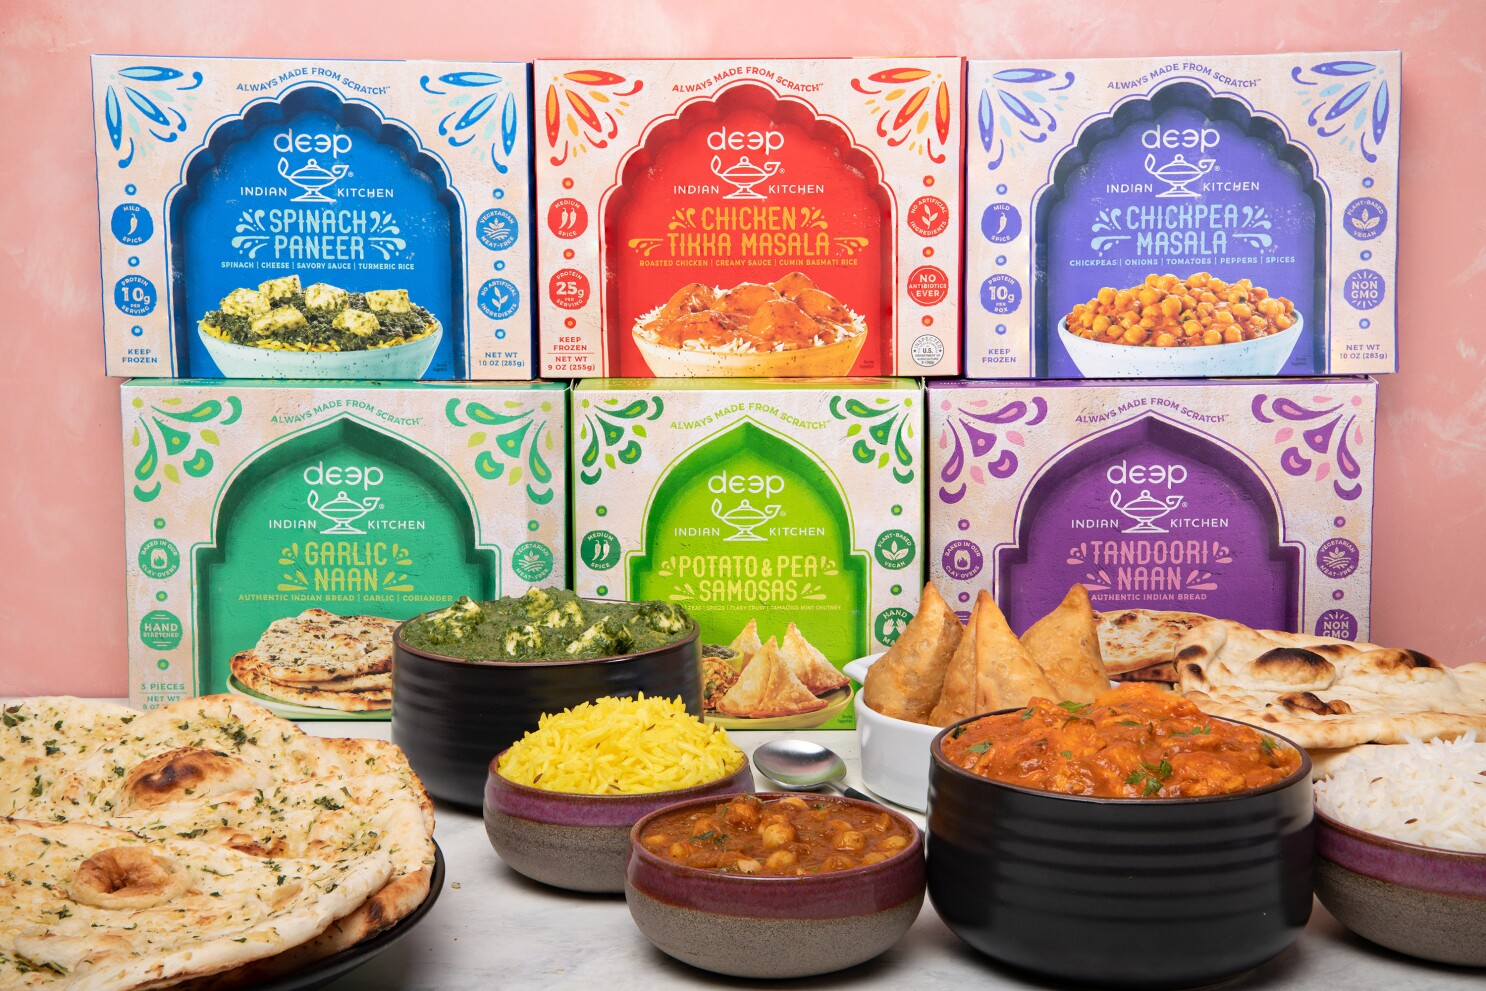 Deep Indian Kitchen Brings Family Flavor To Home Freezers The